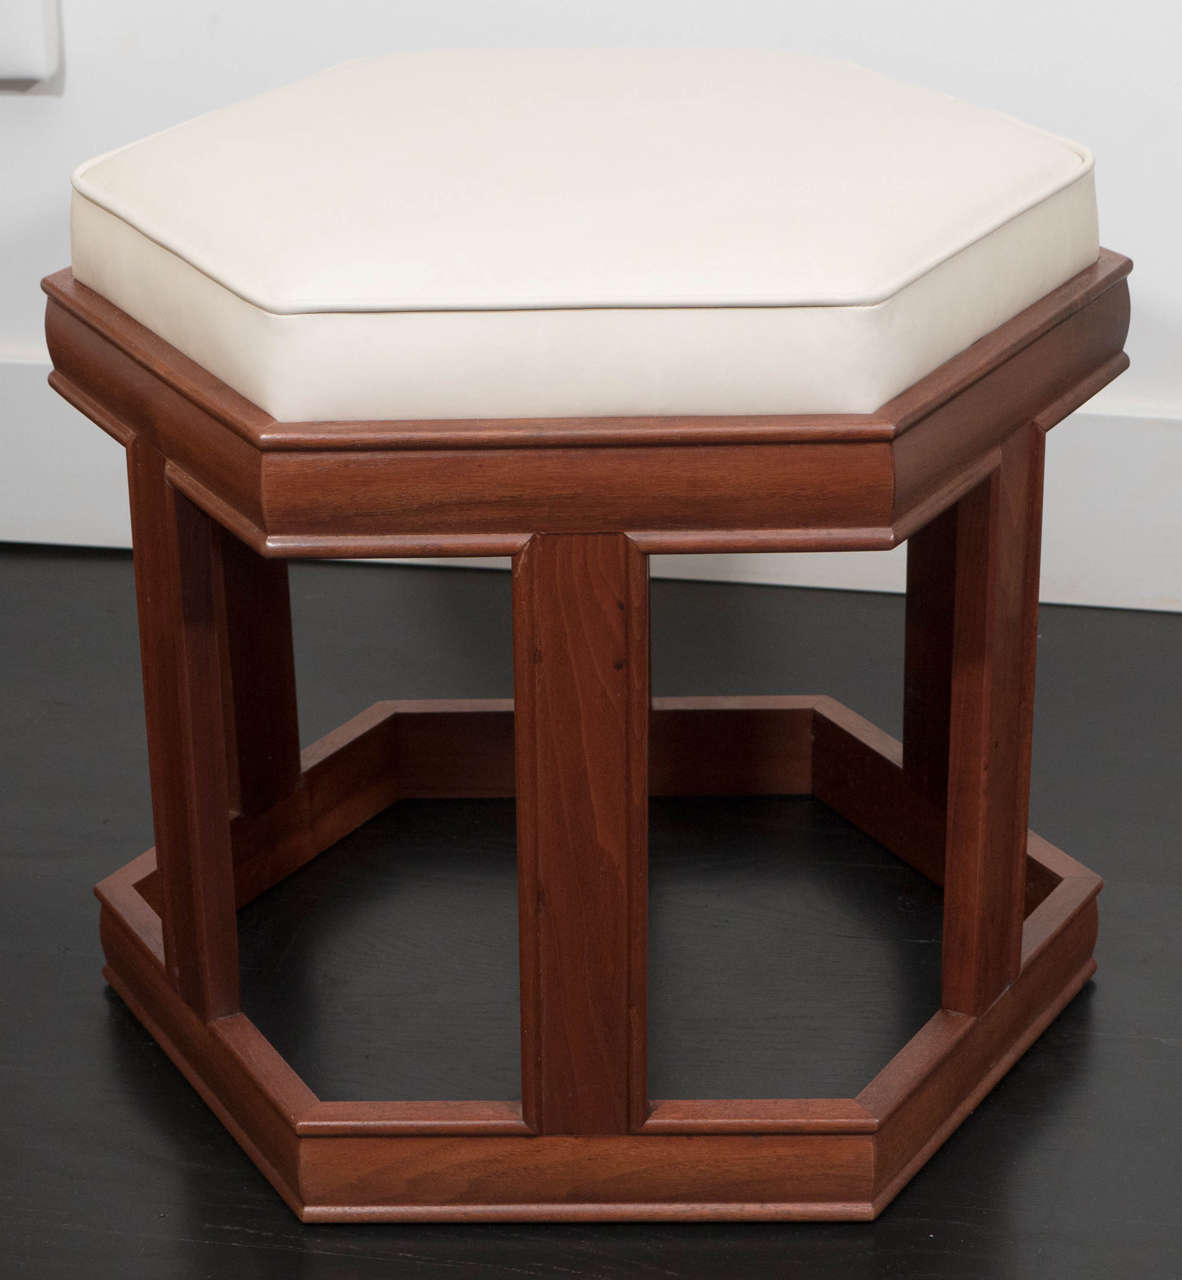 Hexagonal stools with leather seats and mahogany frames designed by John Keal for Brown Saltman.